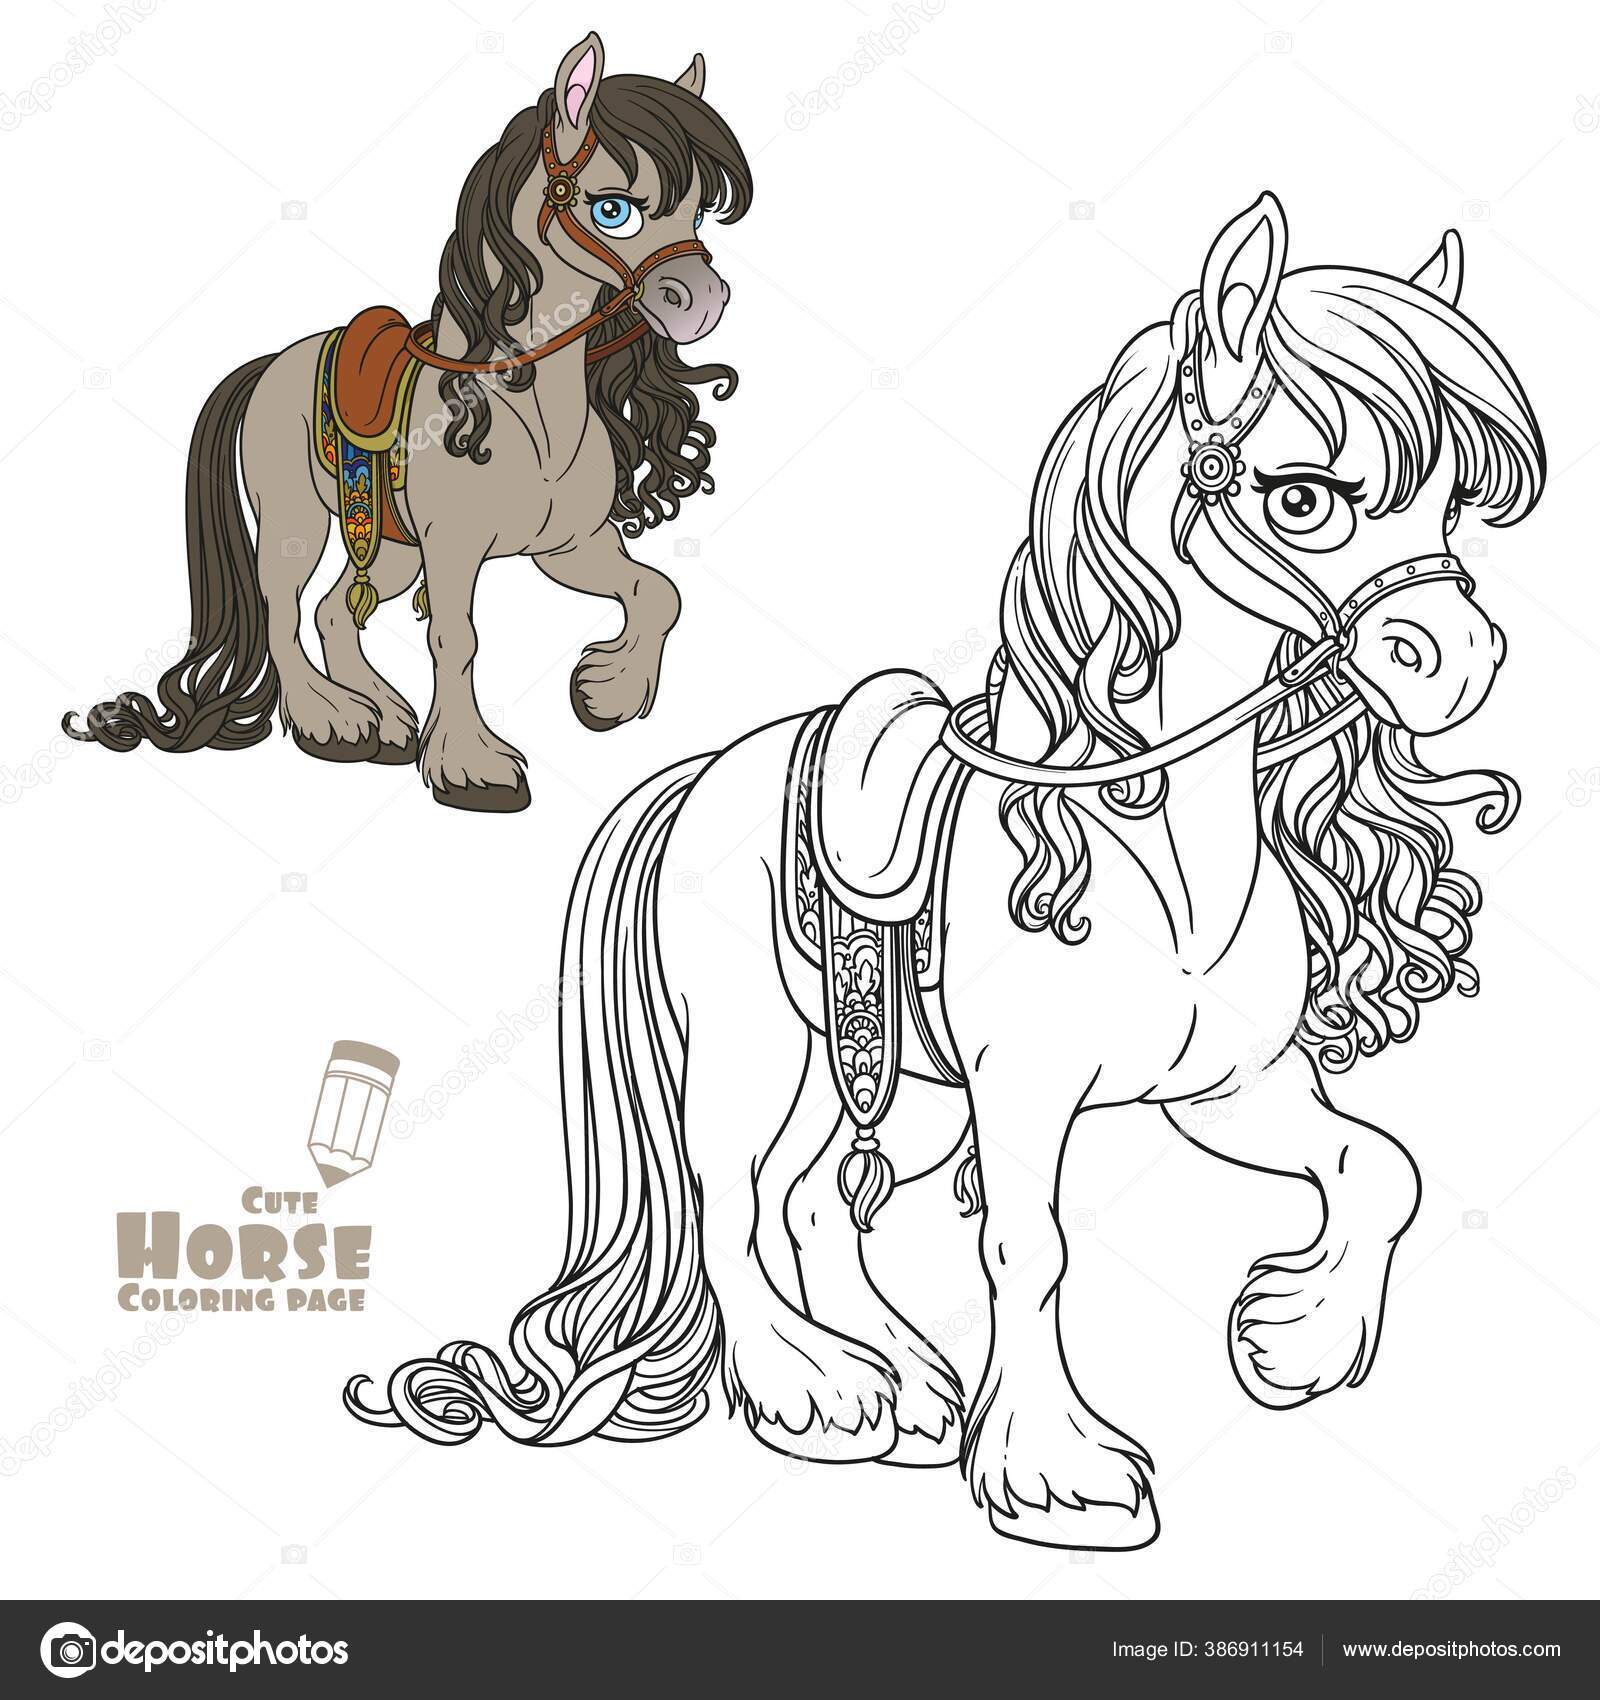 Cute Horse Lush Mane Harnessed Saddle Color Outlined Picture Coloring Stock Vector C Yadviga 386911154